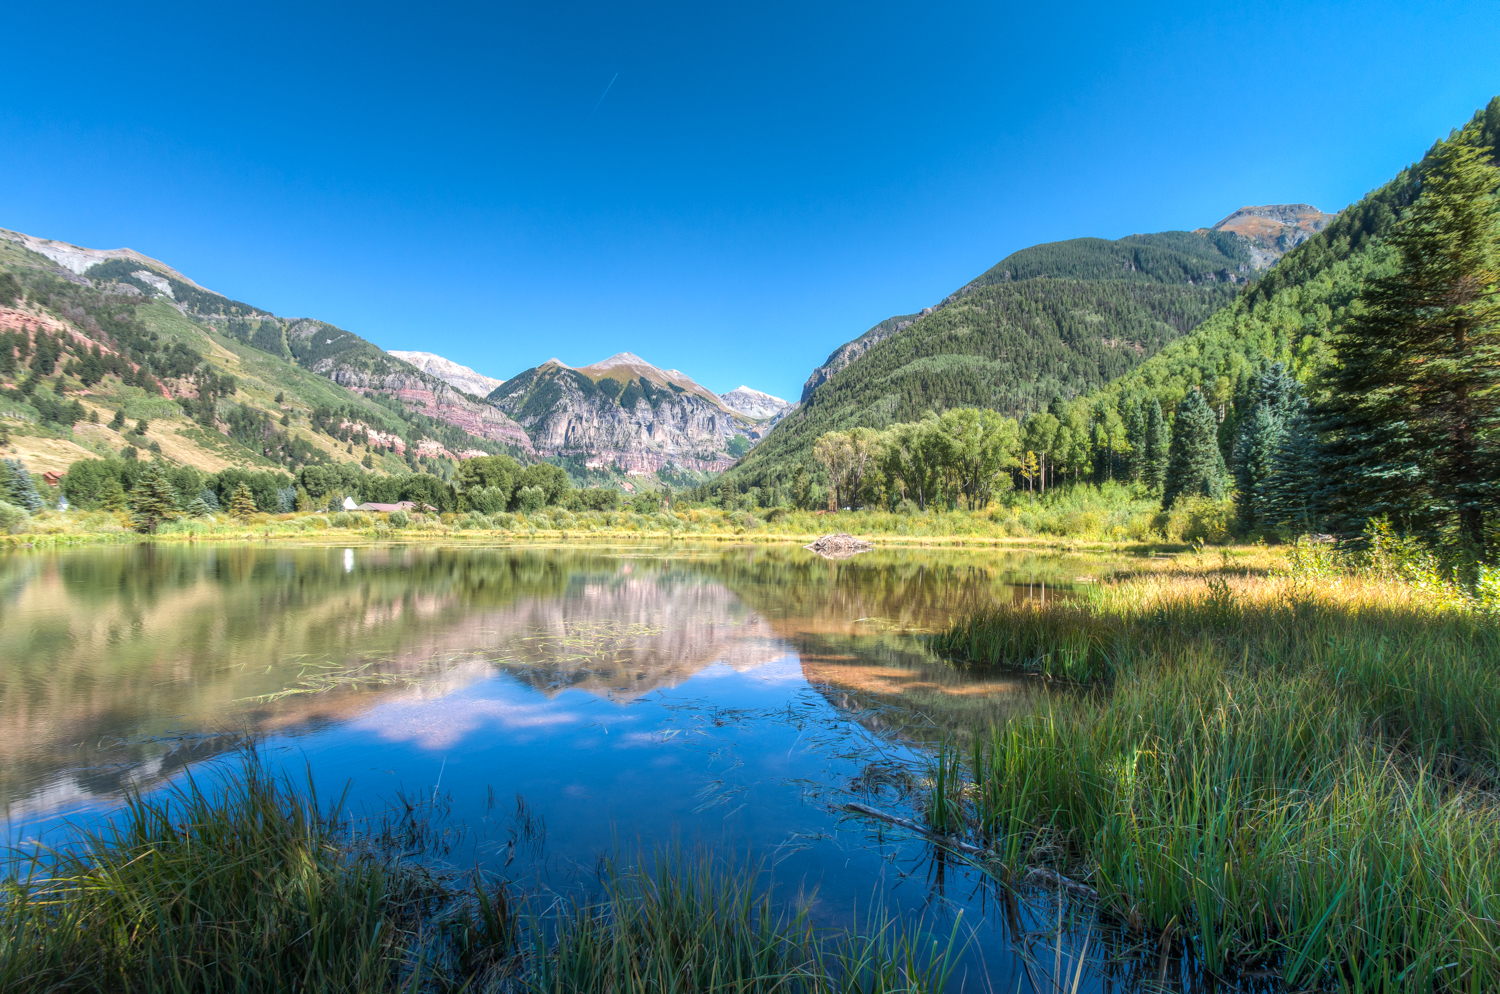 Beaver Pond view of mountain reflecting in water